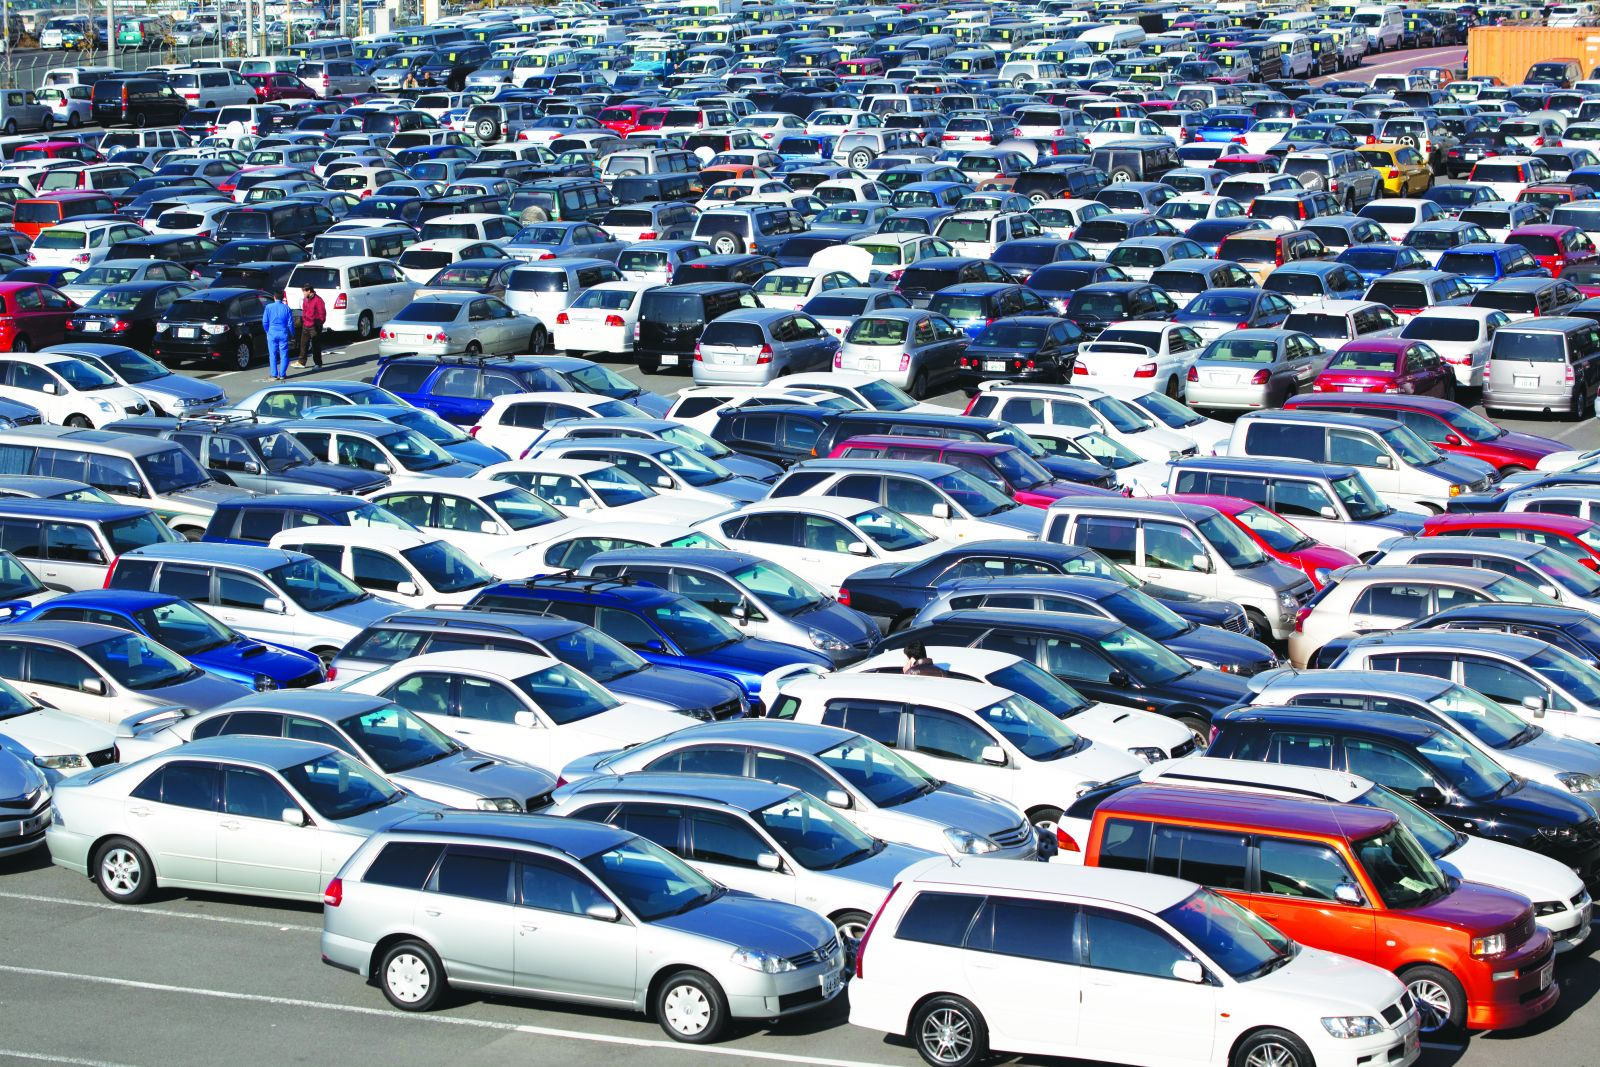 Government Auctions Cars: The Villager-Government Auctions 800 Cars In One Year